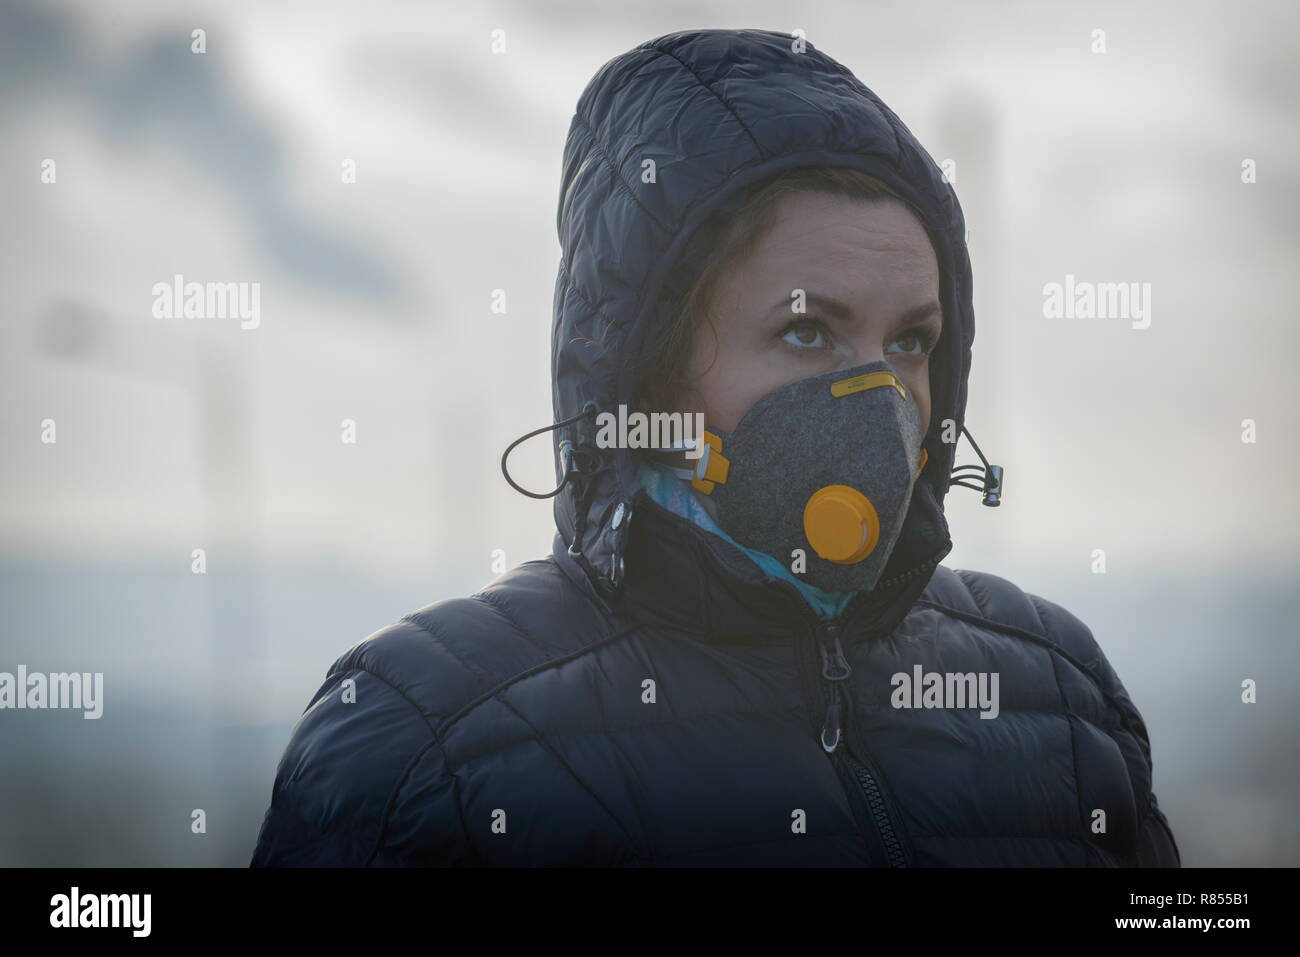 Woman wearing a real anti-pollution, anti-smog and viruses face mask; dense smog in air. - Stock Image